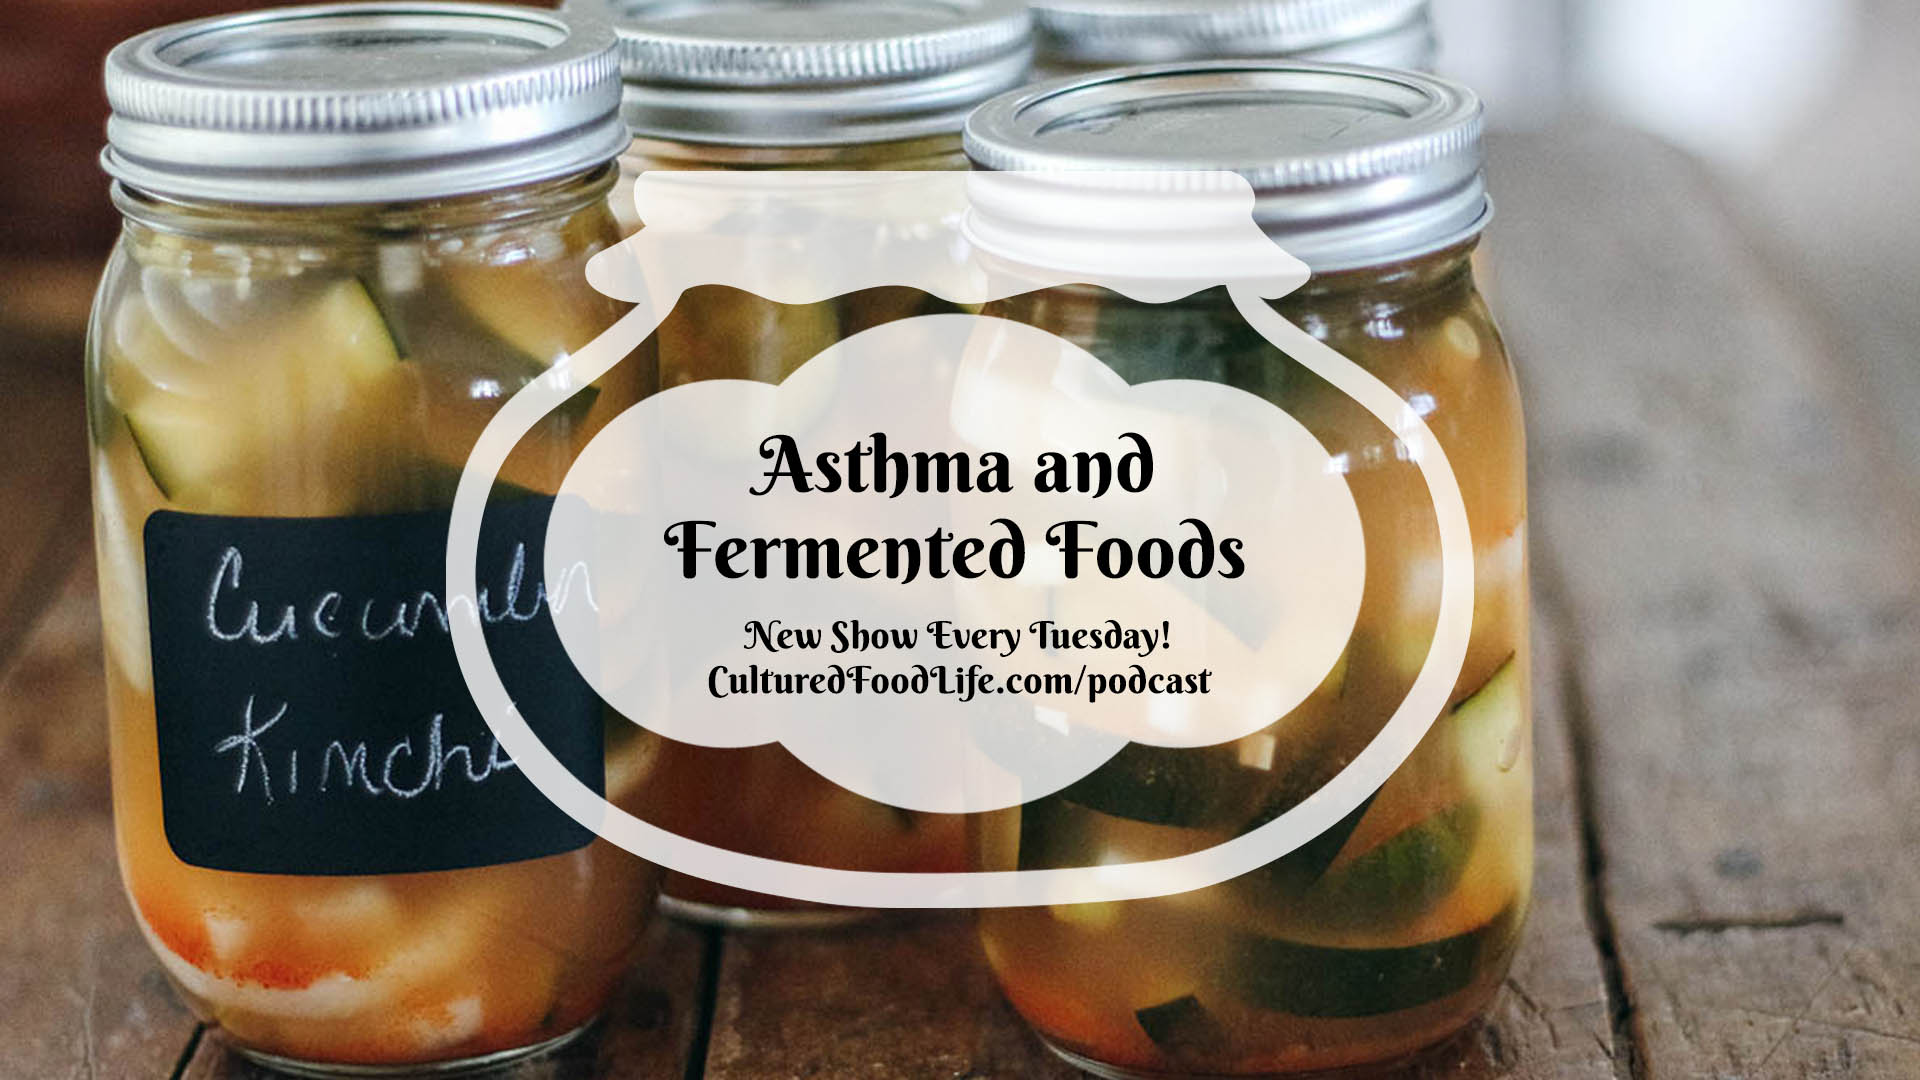 Asthma and Fermented Foods